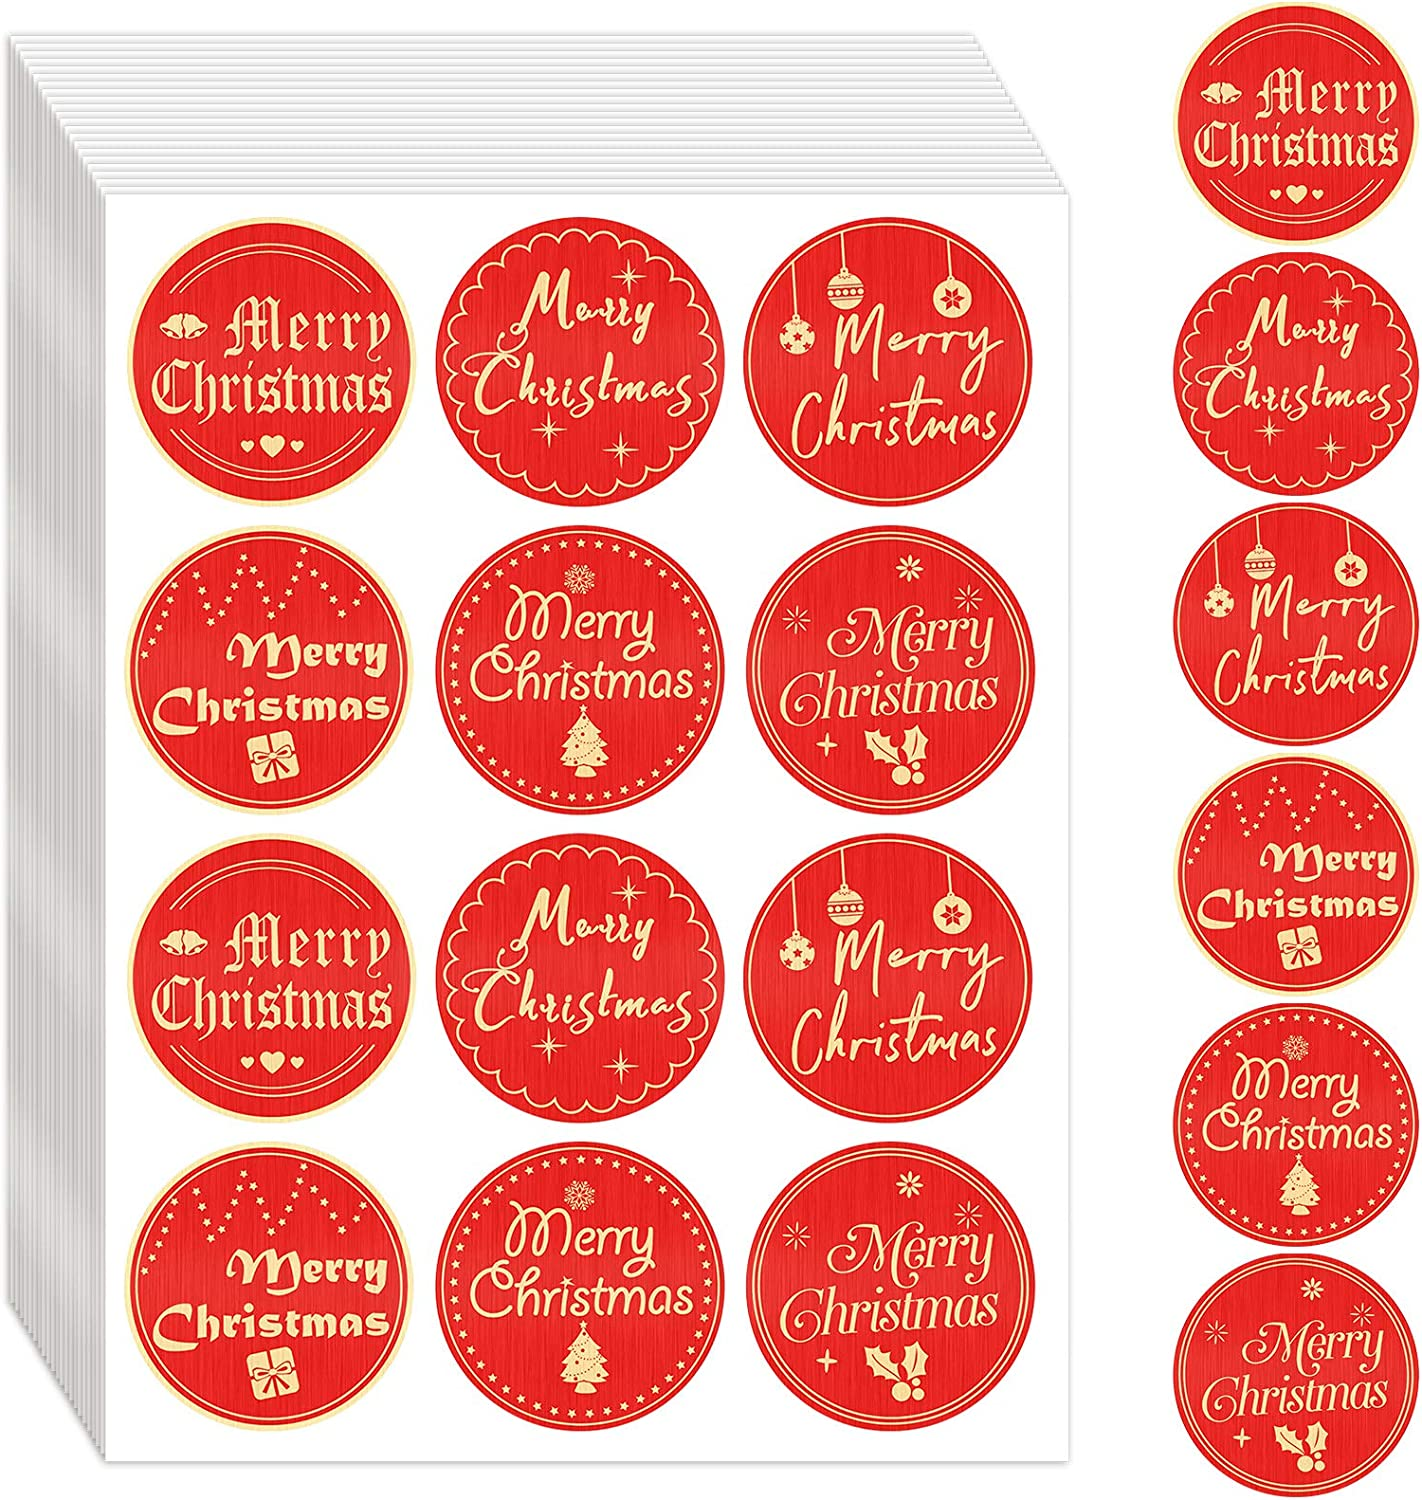 480 Pieces Merry Christmas Stickers Seals 2 Inch Gold Foil Christmas Envelope Stickers Round Christmas Labels for Cards Present Envelopes Boxes, Red